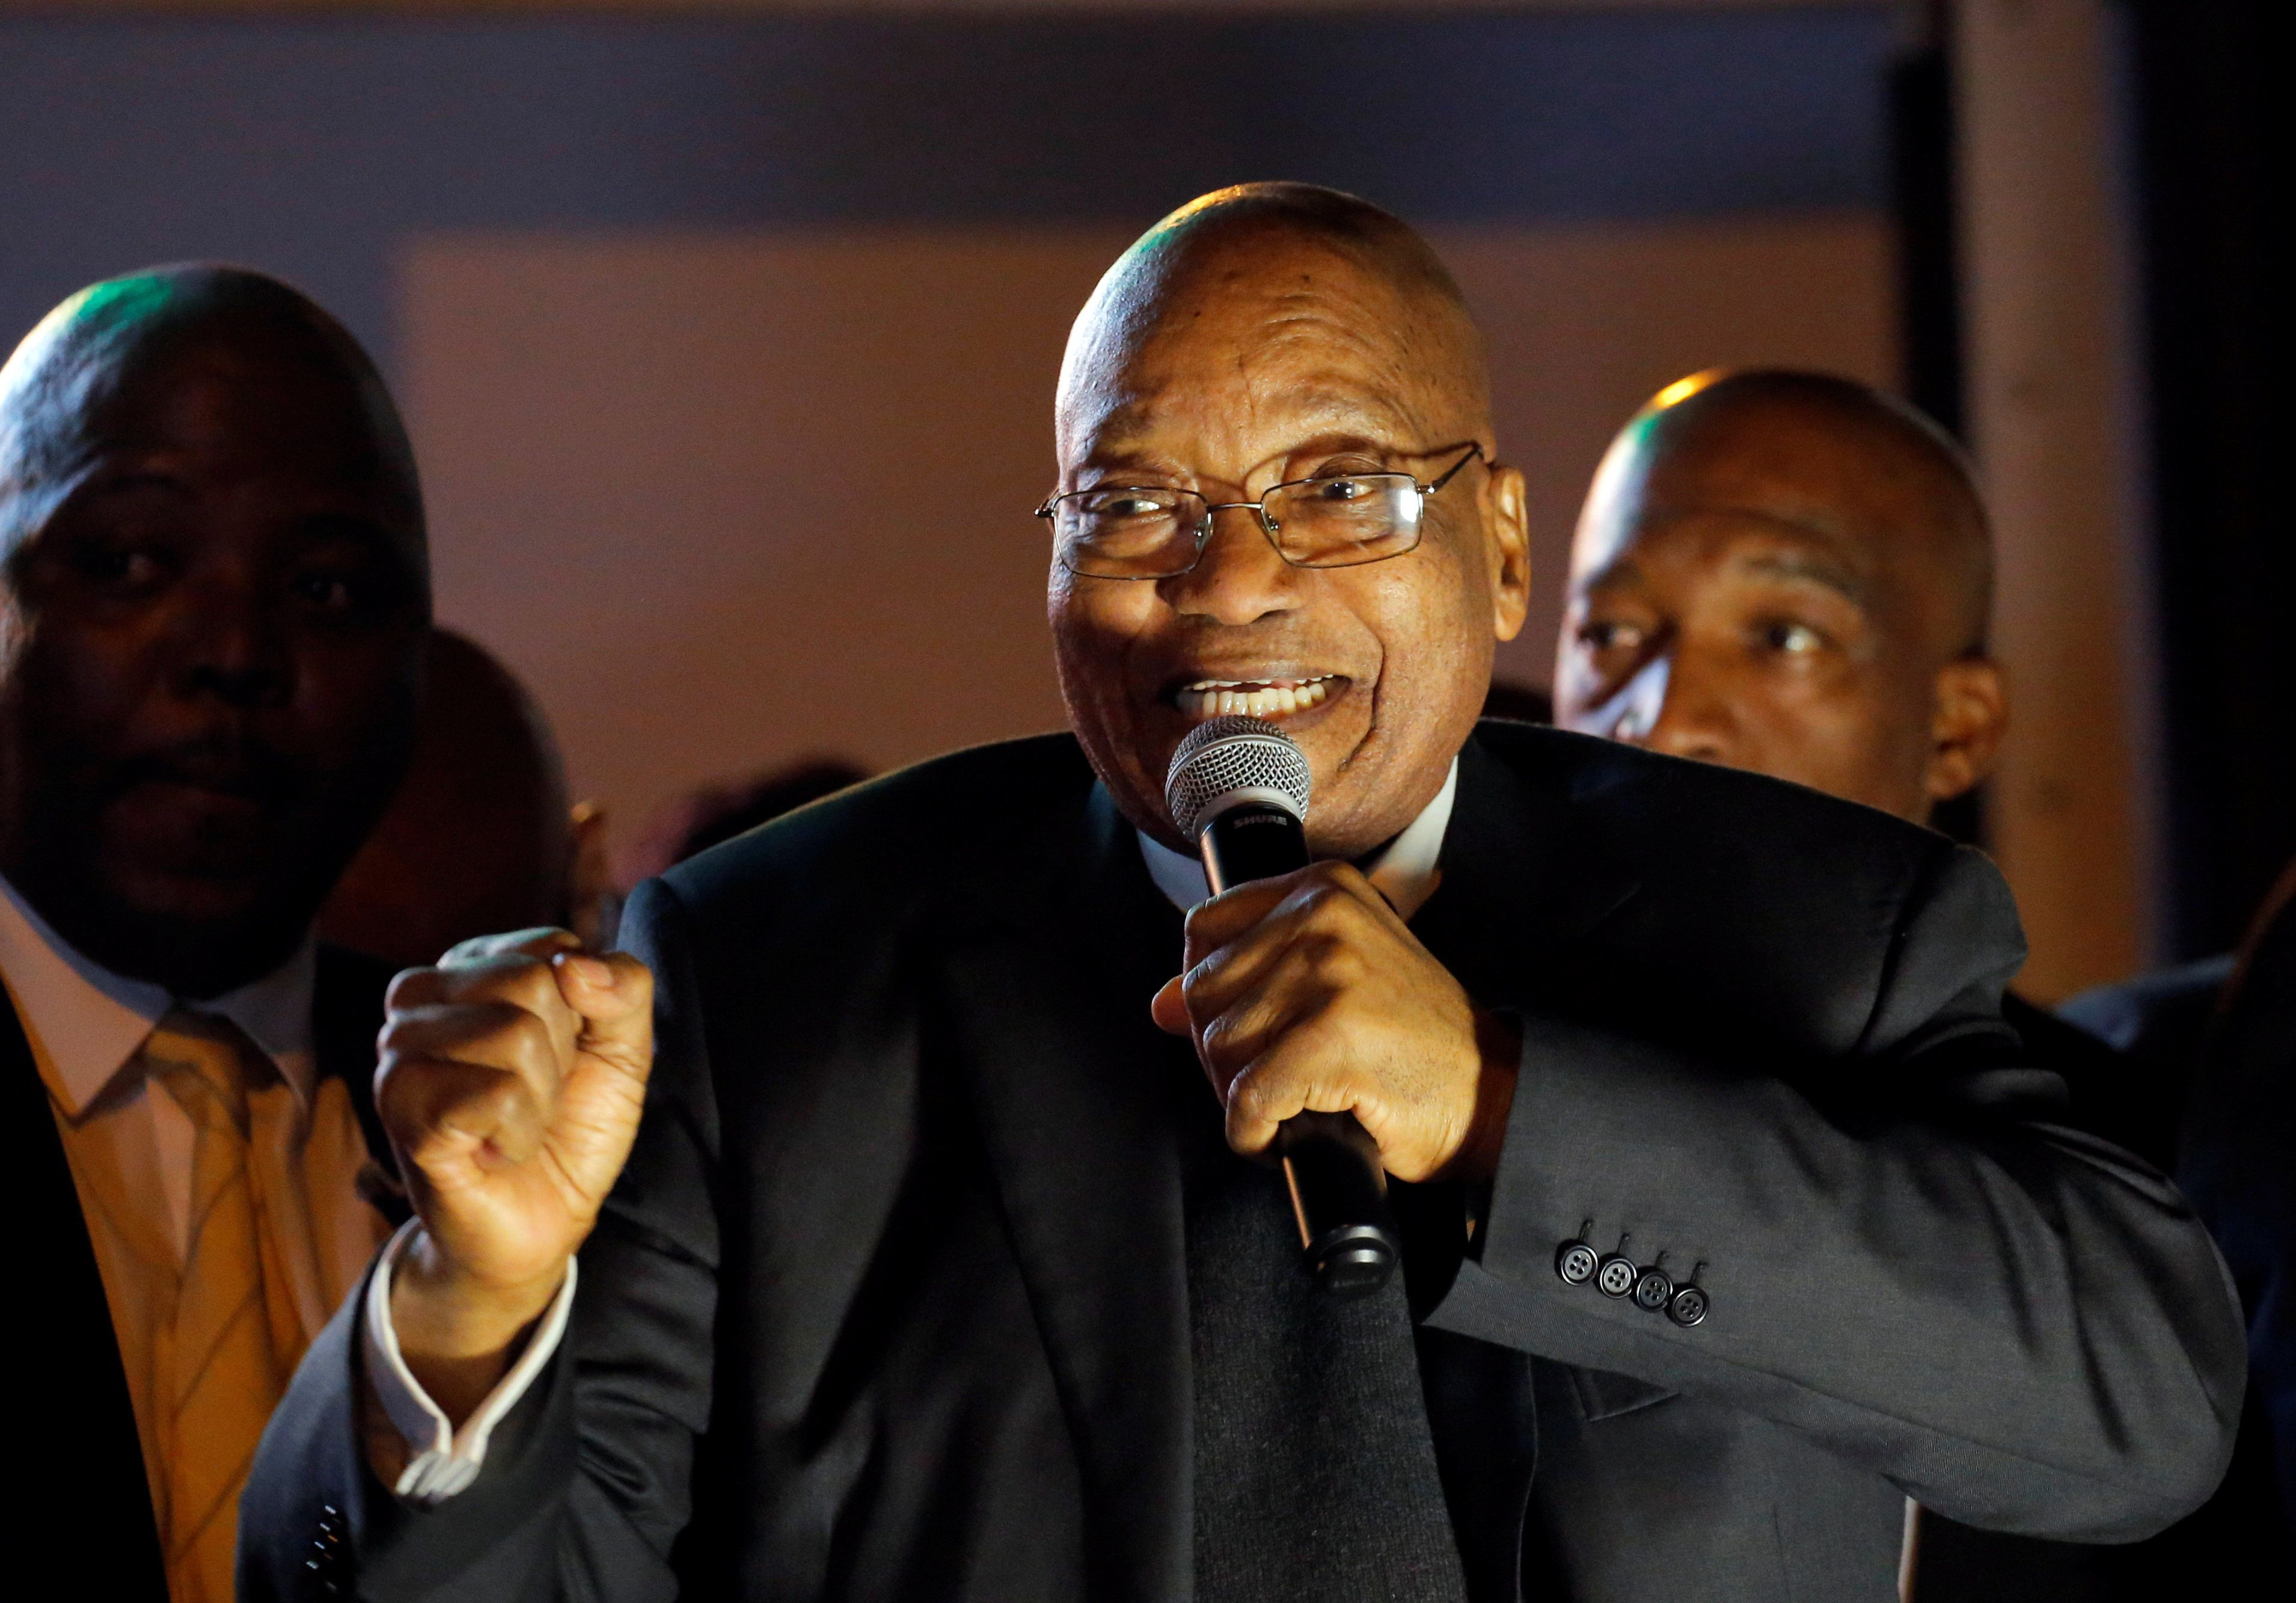 South African President Jacob Zuma addresses his supporters after surviving a no-confidence motion in Cape Town, South Africa